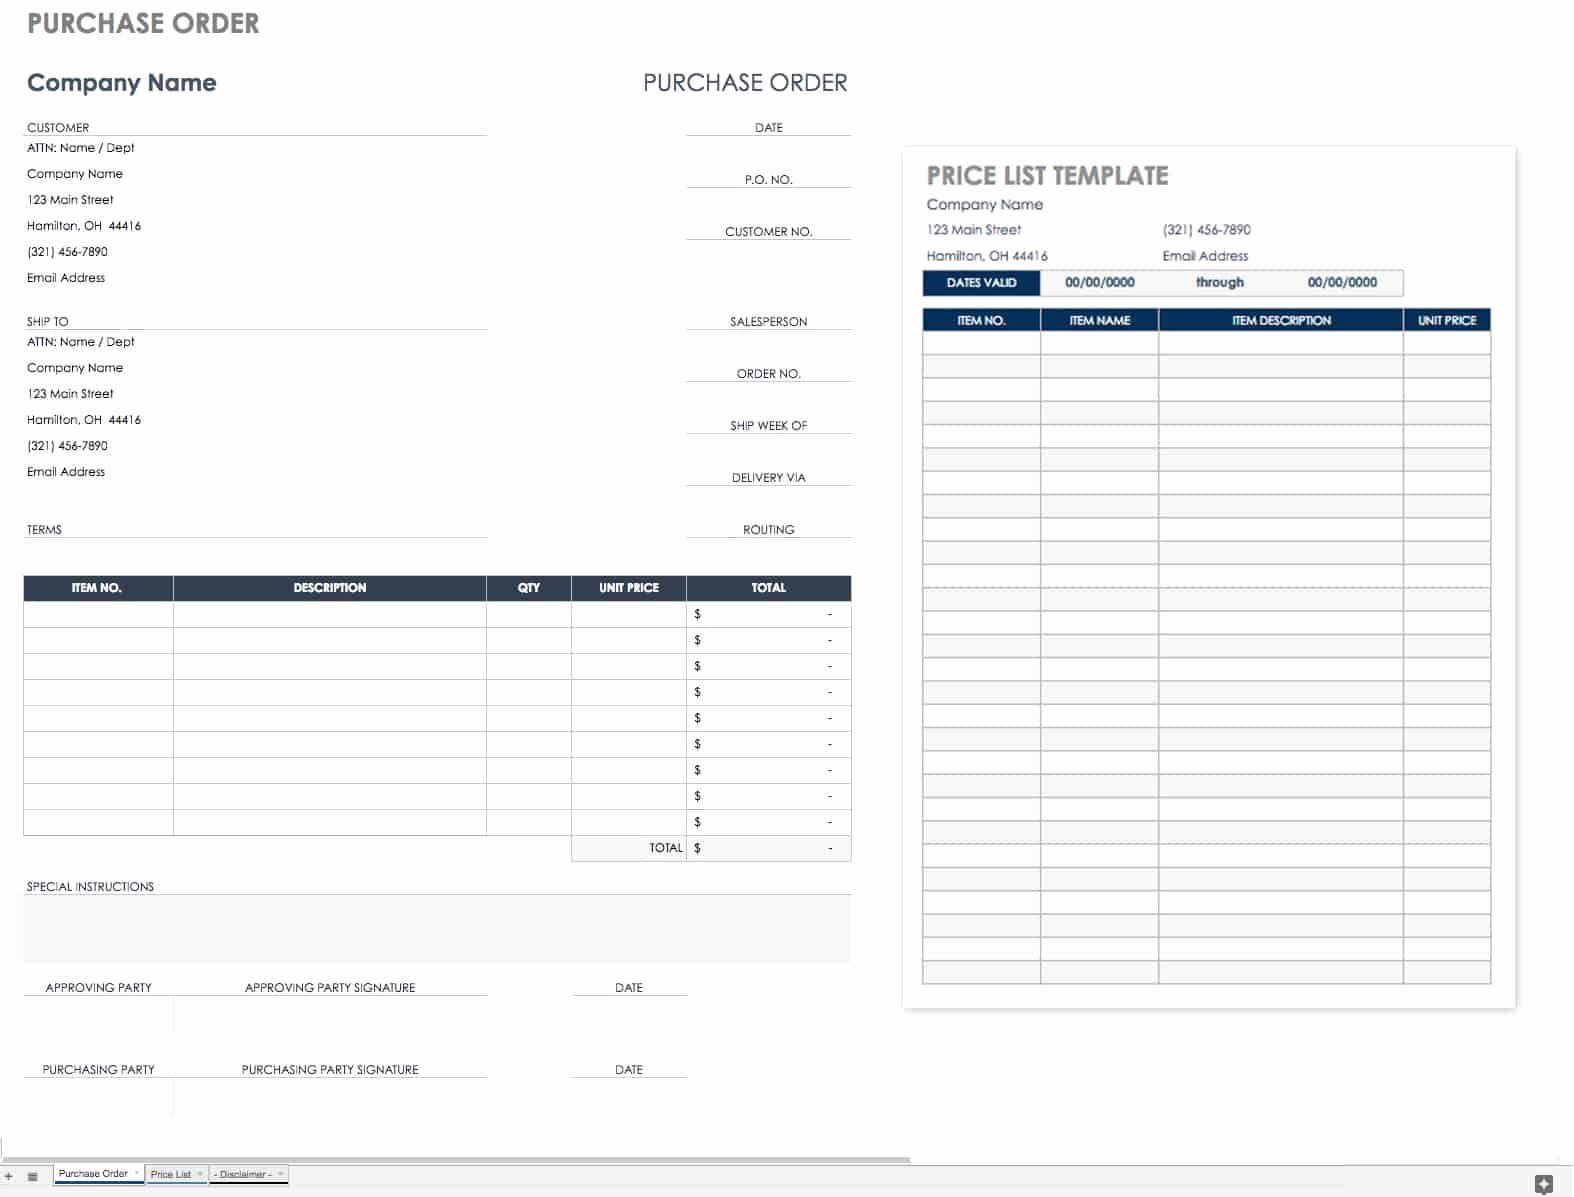 Blanket Purchase Agreement Template New Free Purchase order Templates